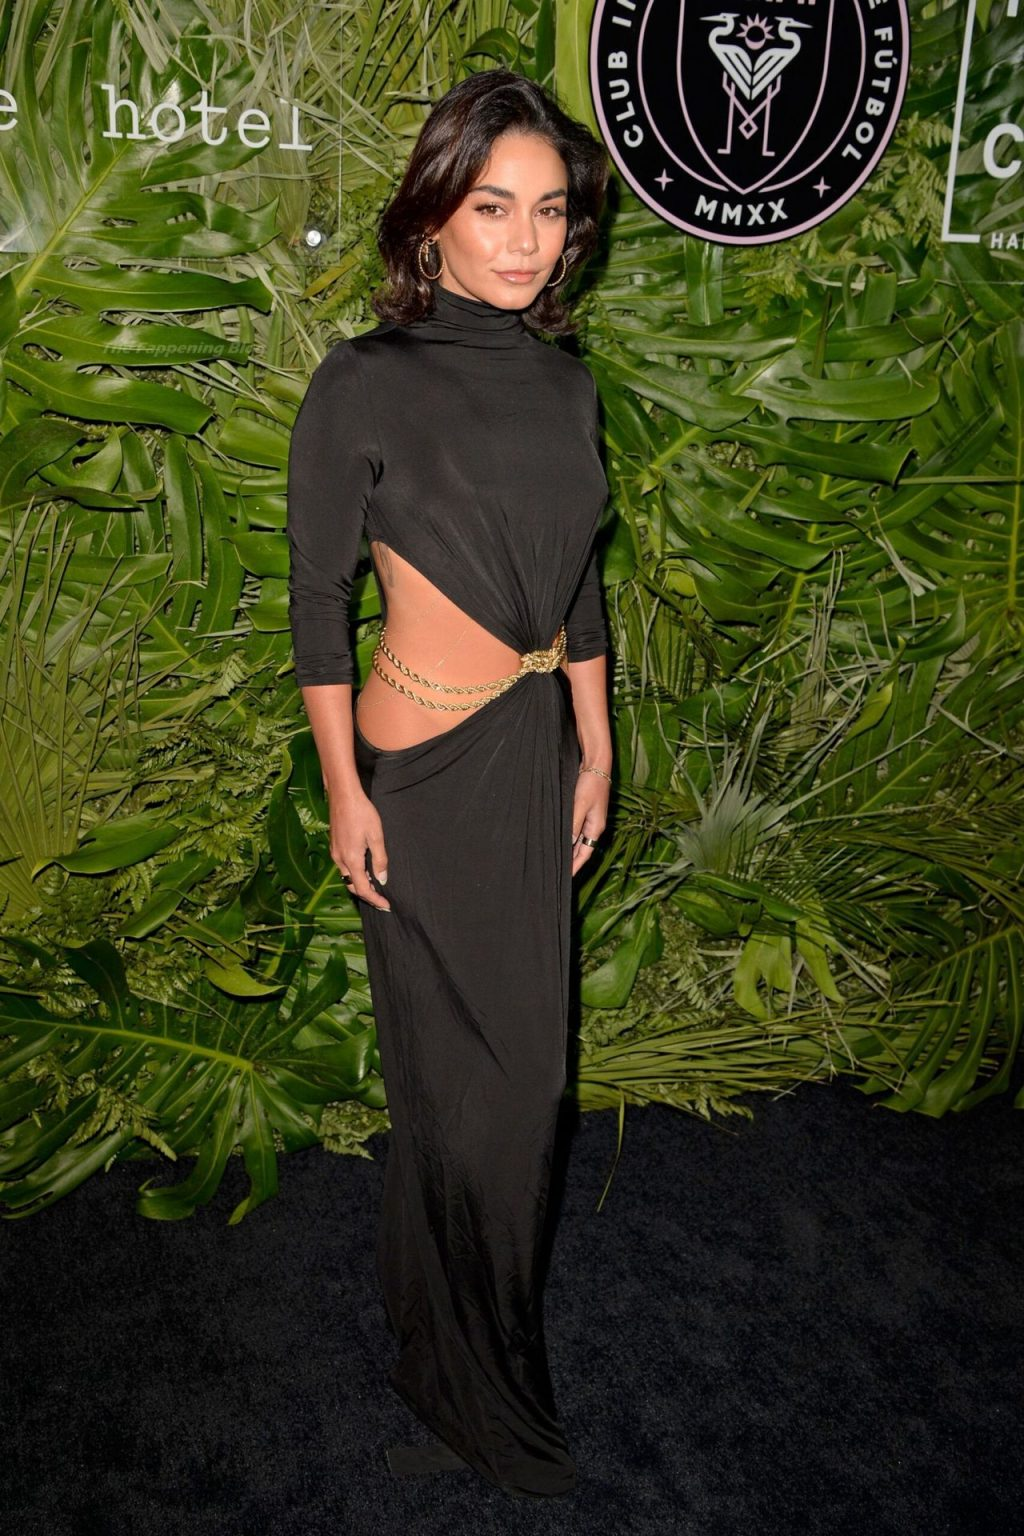 Braless Vanessa Hudgens Stuns at The Goodtime Hotel Opening in Miami (30 Photos)